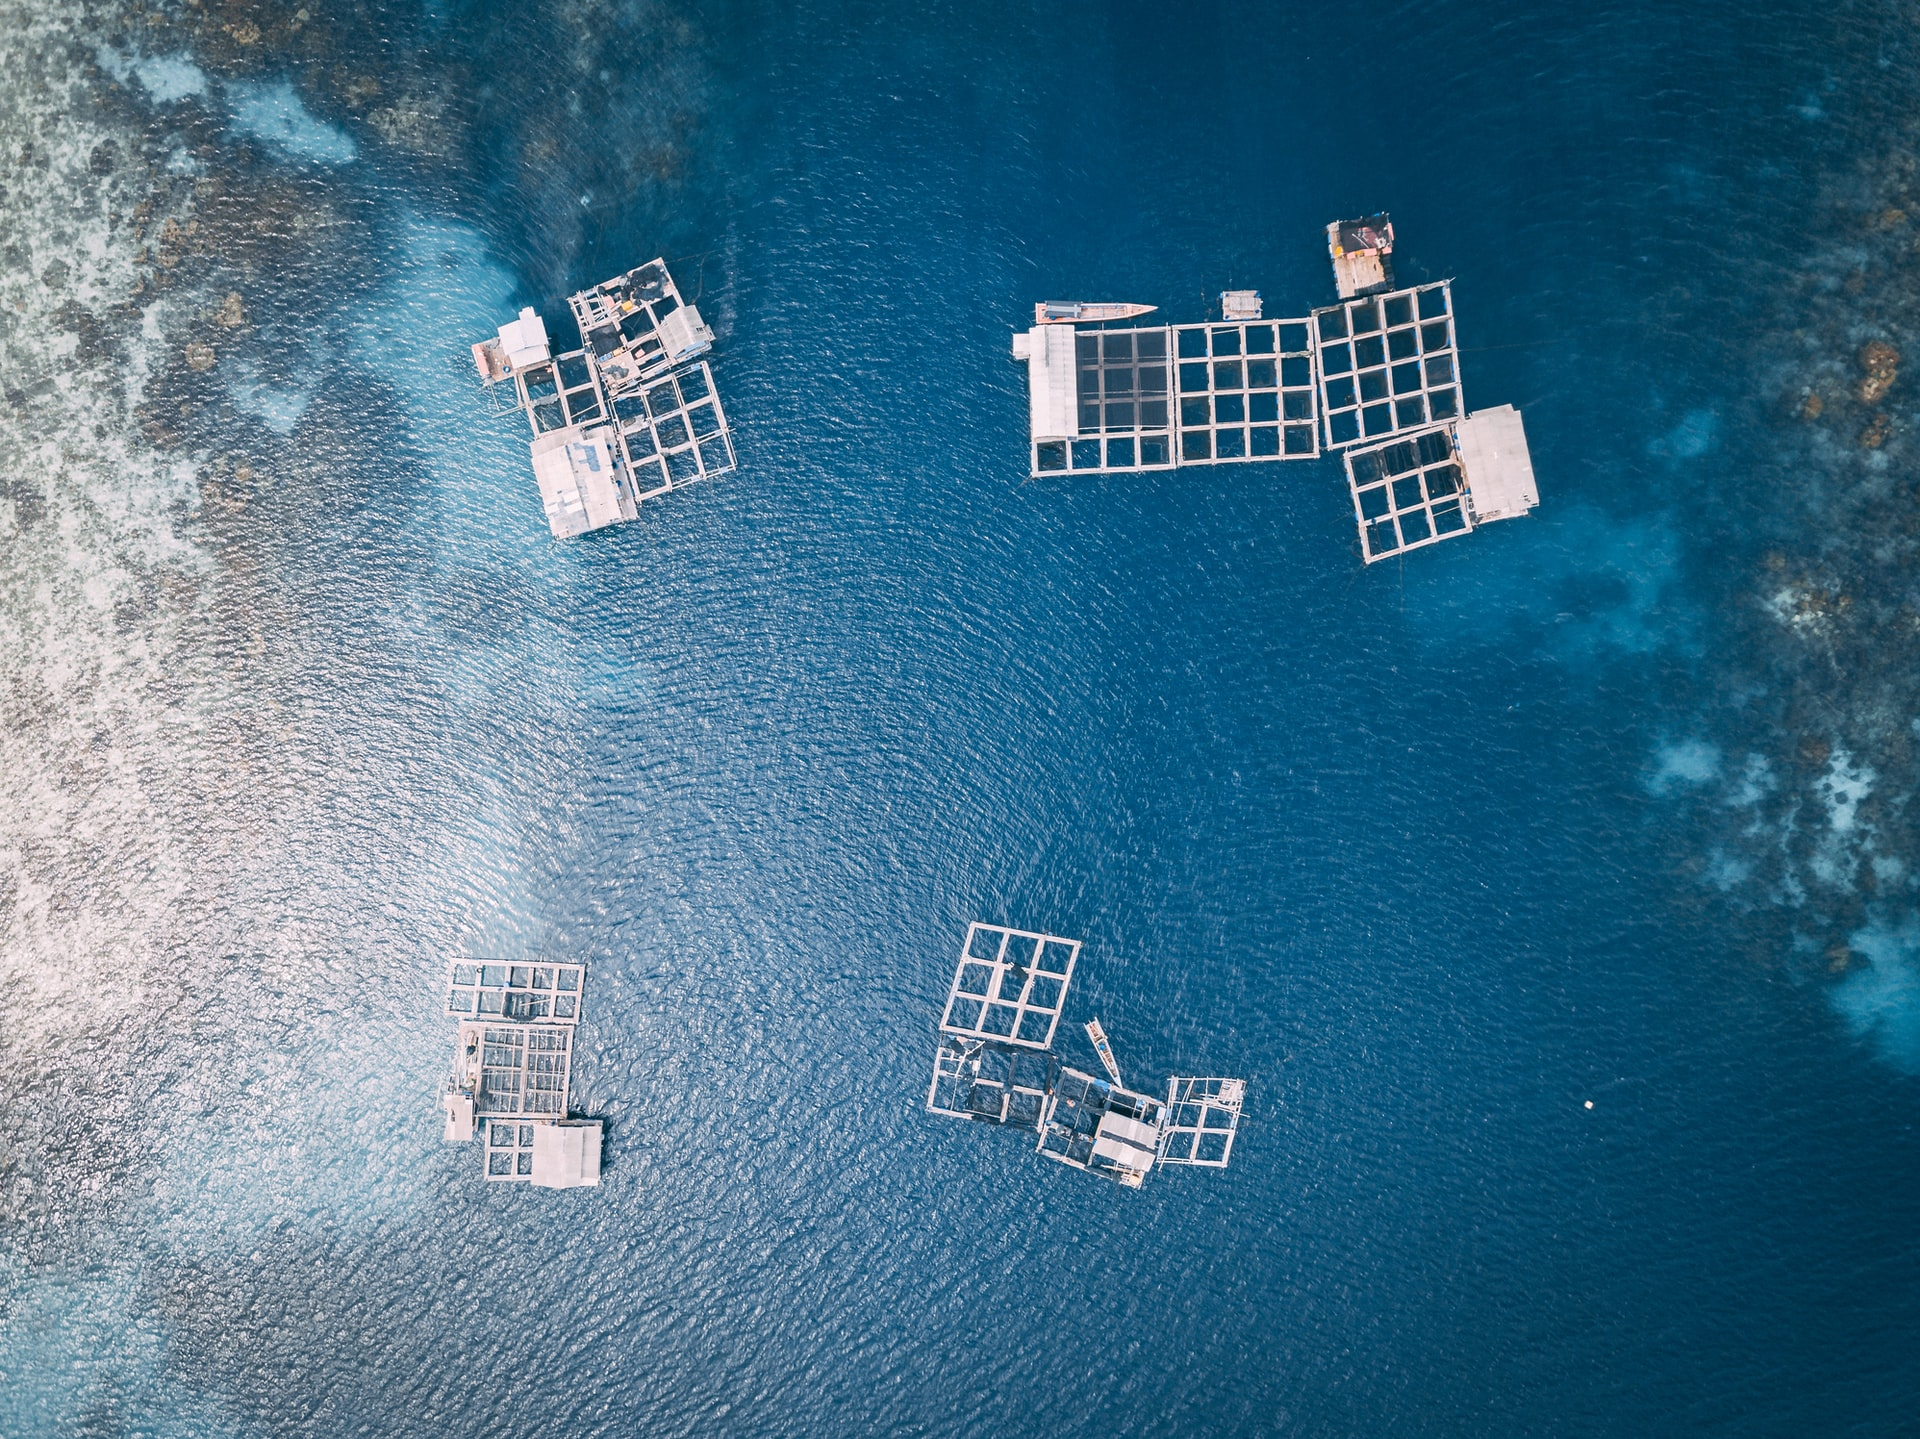 Aquaculture from above